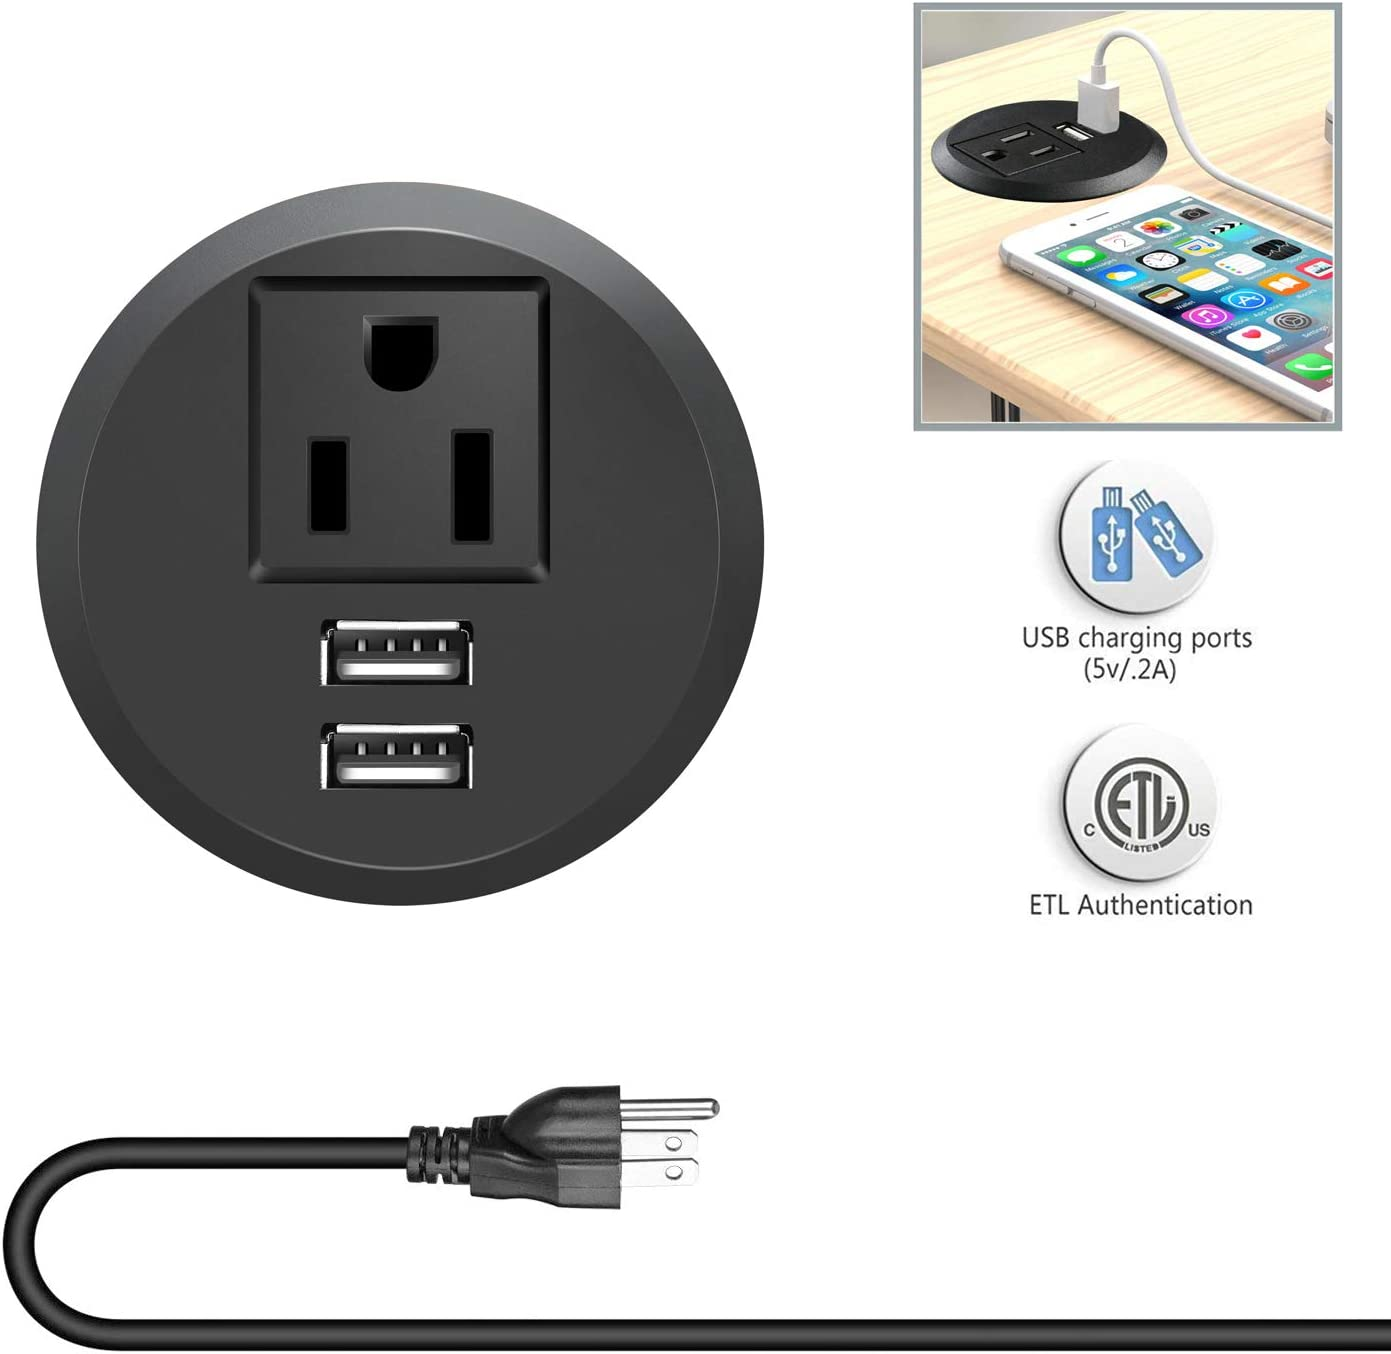 Desk Power Grommet Outlet with USB, Power Strip Socket Fits 2 inch Grommet 6.5 ft Extension Cord, for Conference Room Office Kitchen Table